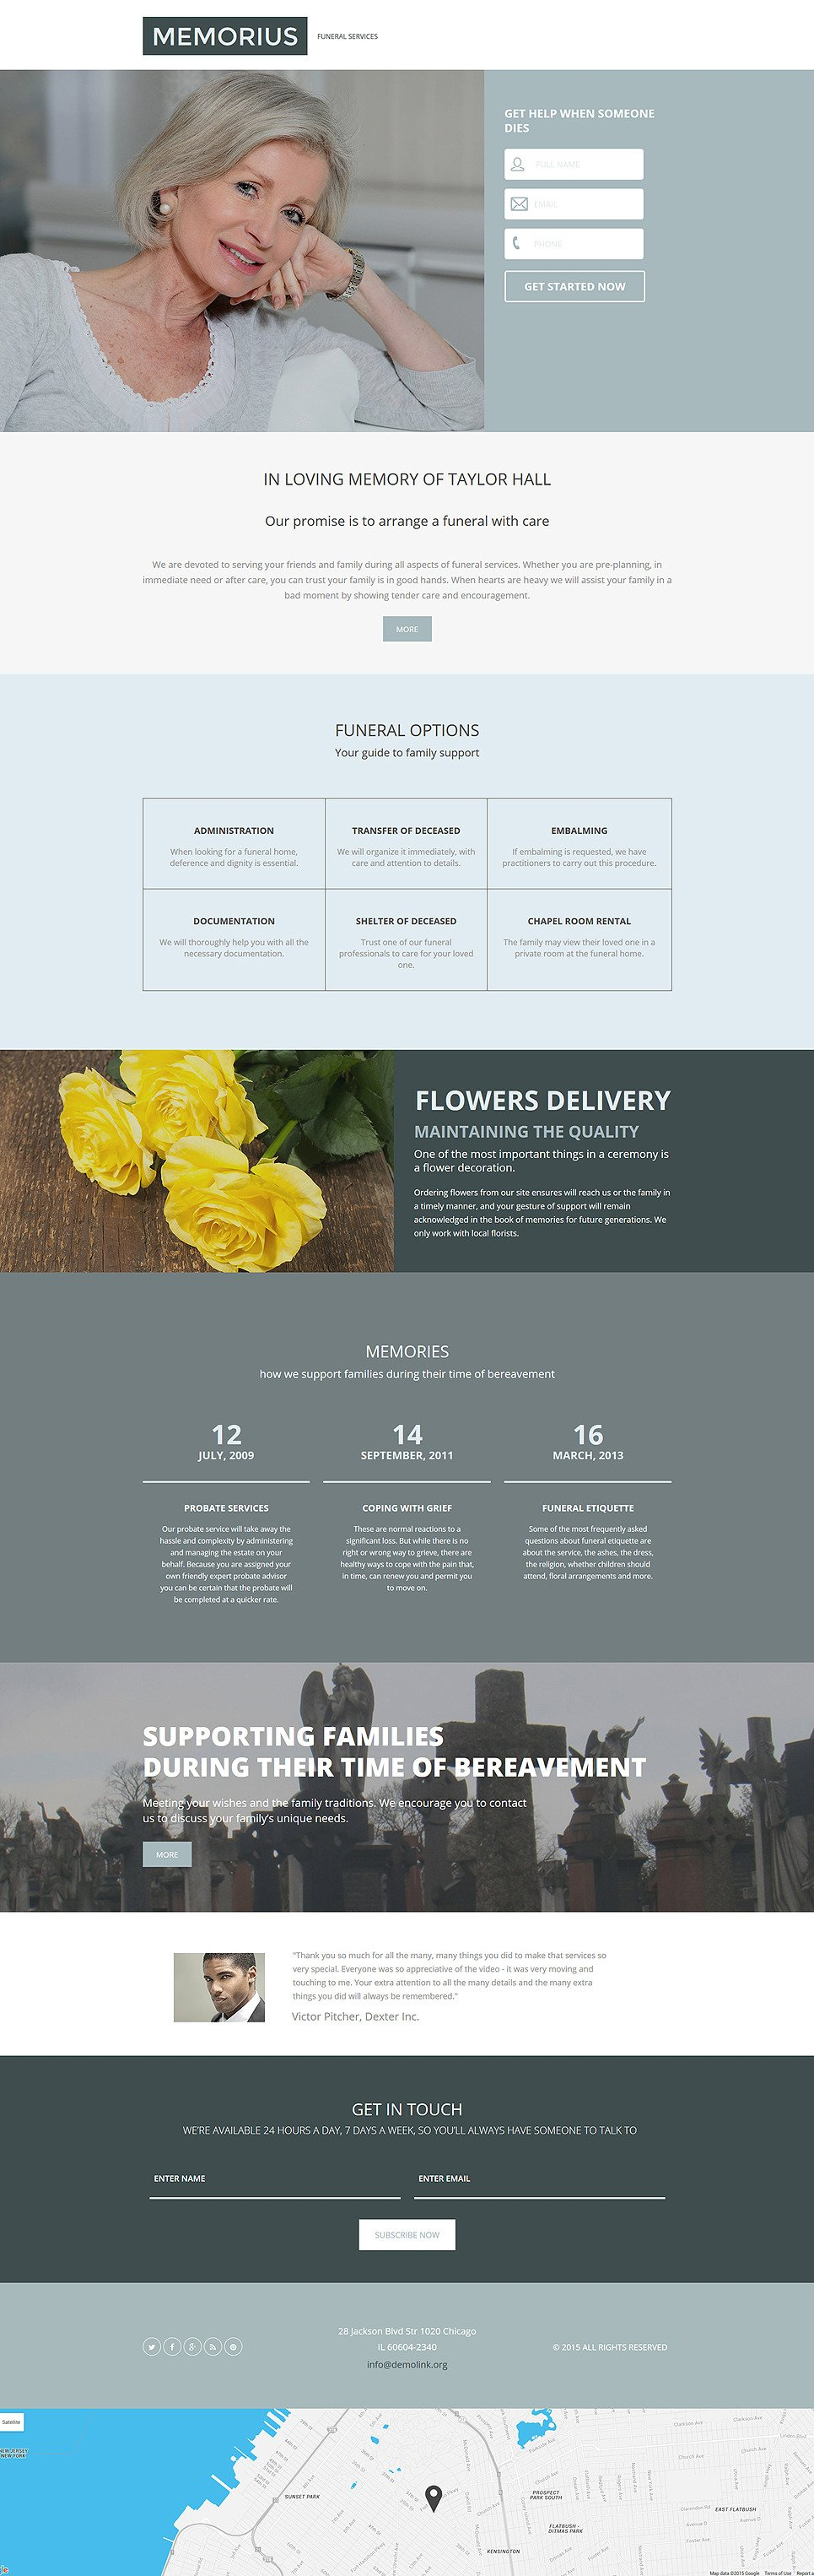 Funeral Services Responsive Landing Page Template New Screenshots BIG